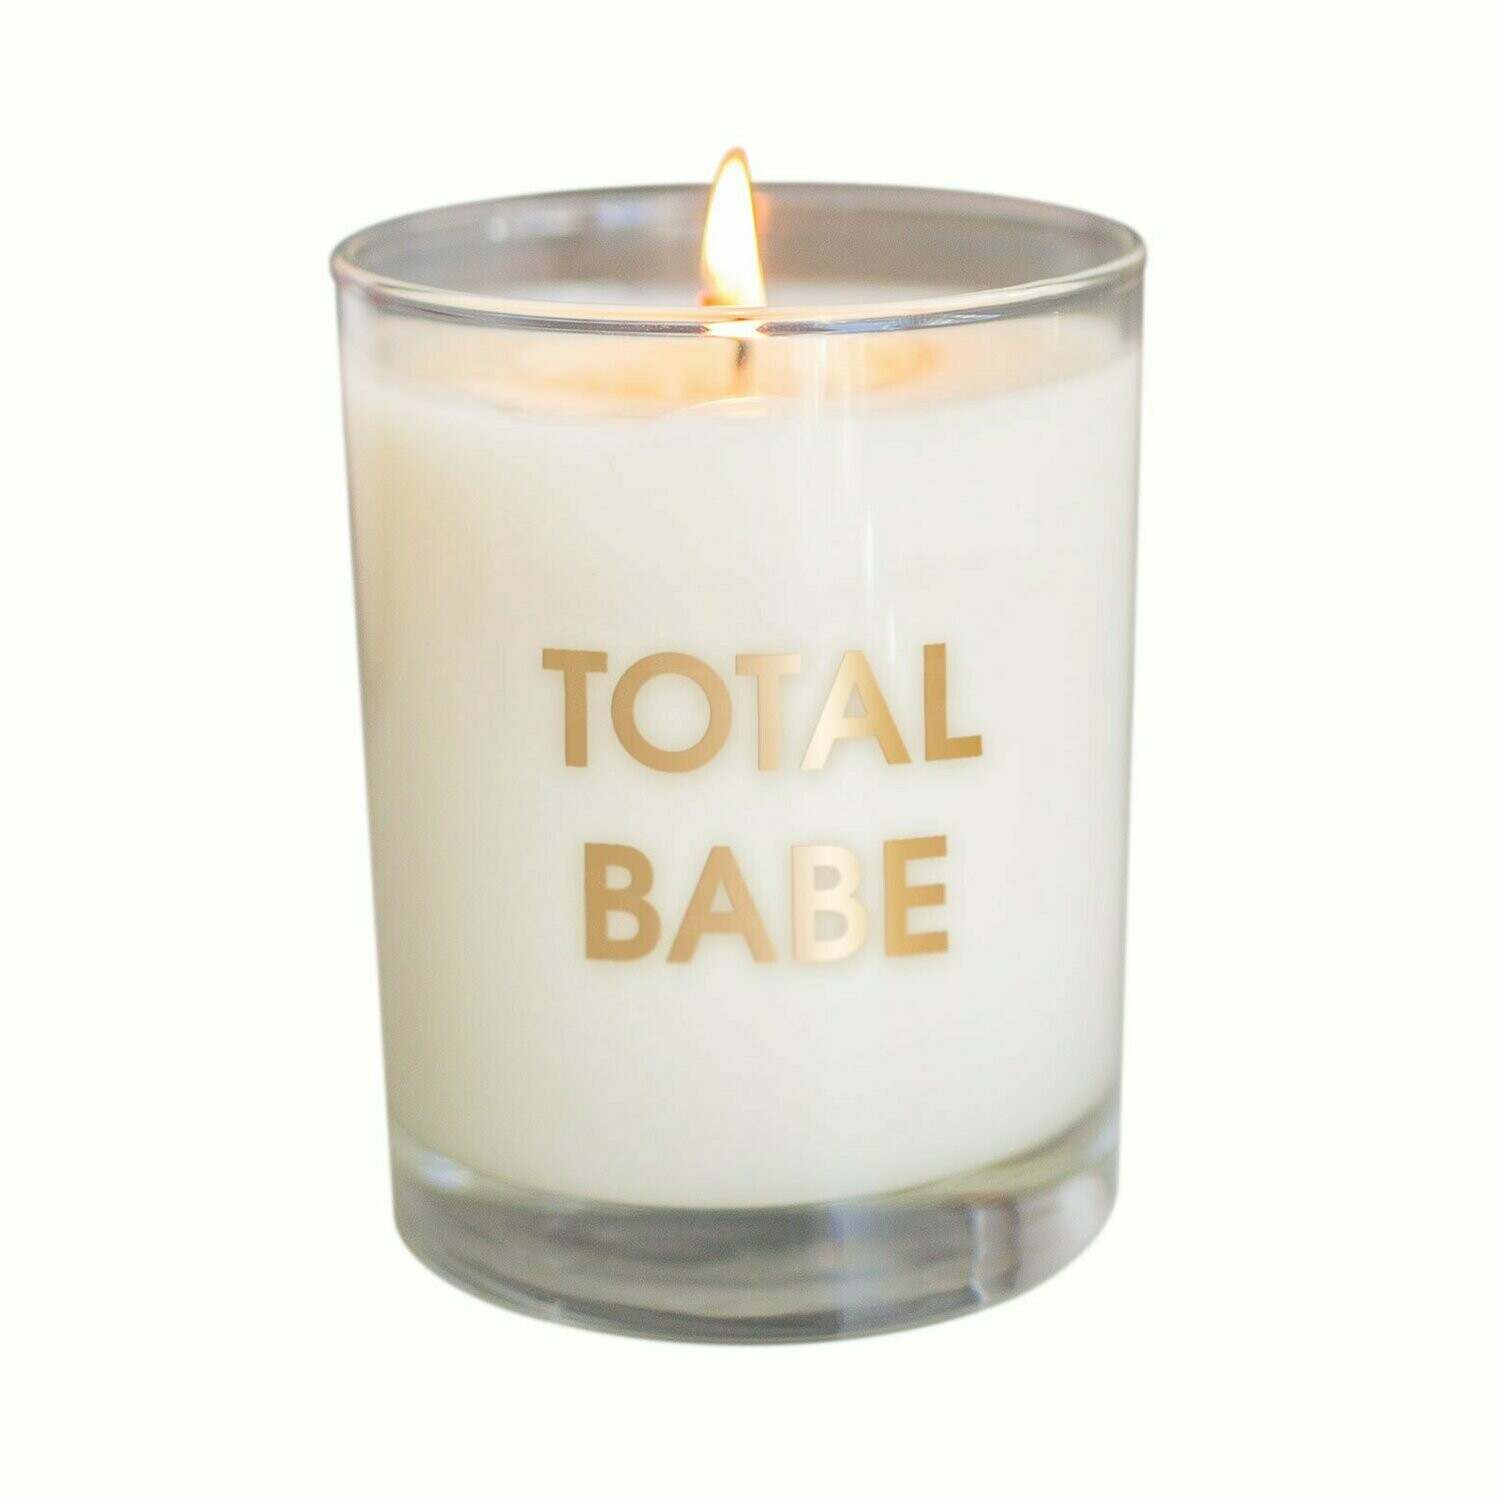 Chez Gagné Total Babe candle